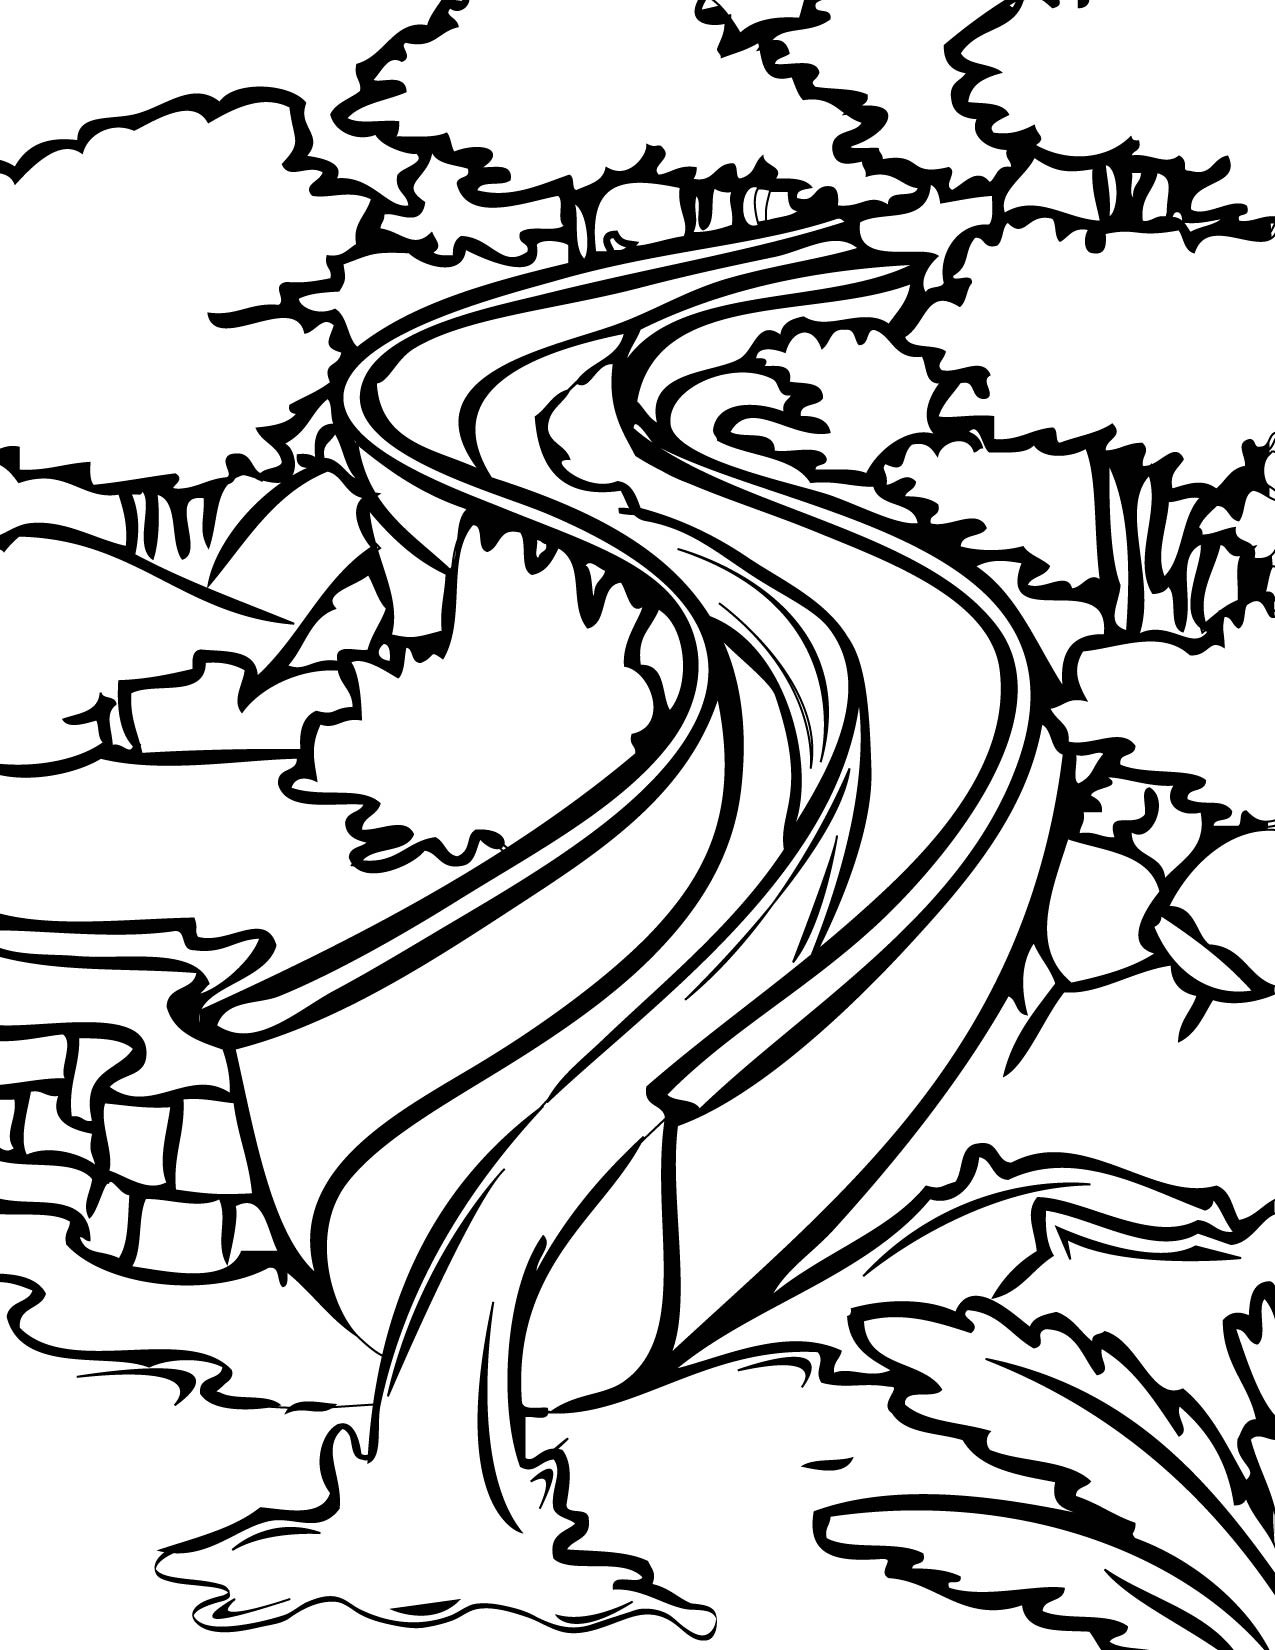 1275x1650 Water Slide Clipart Black And White